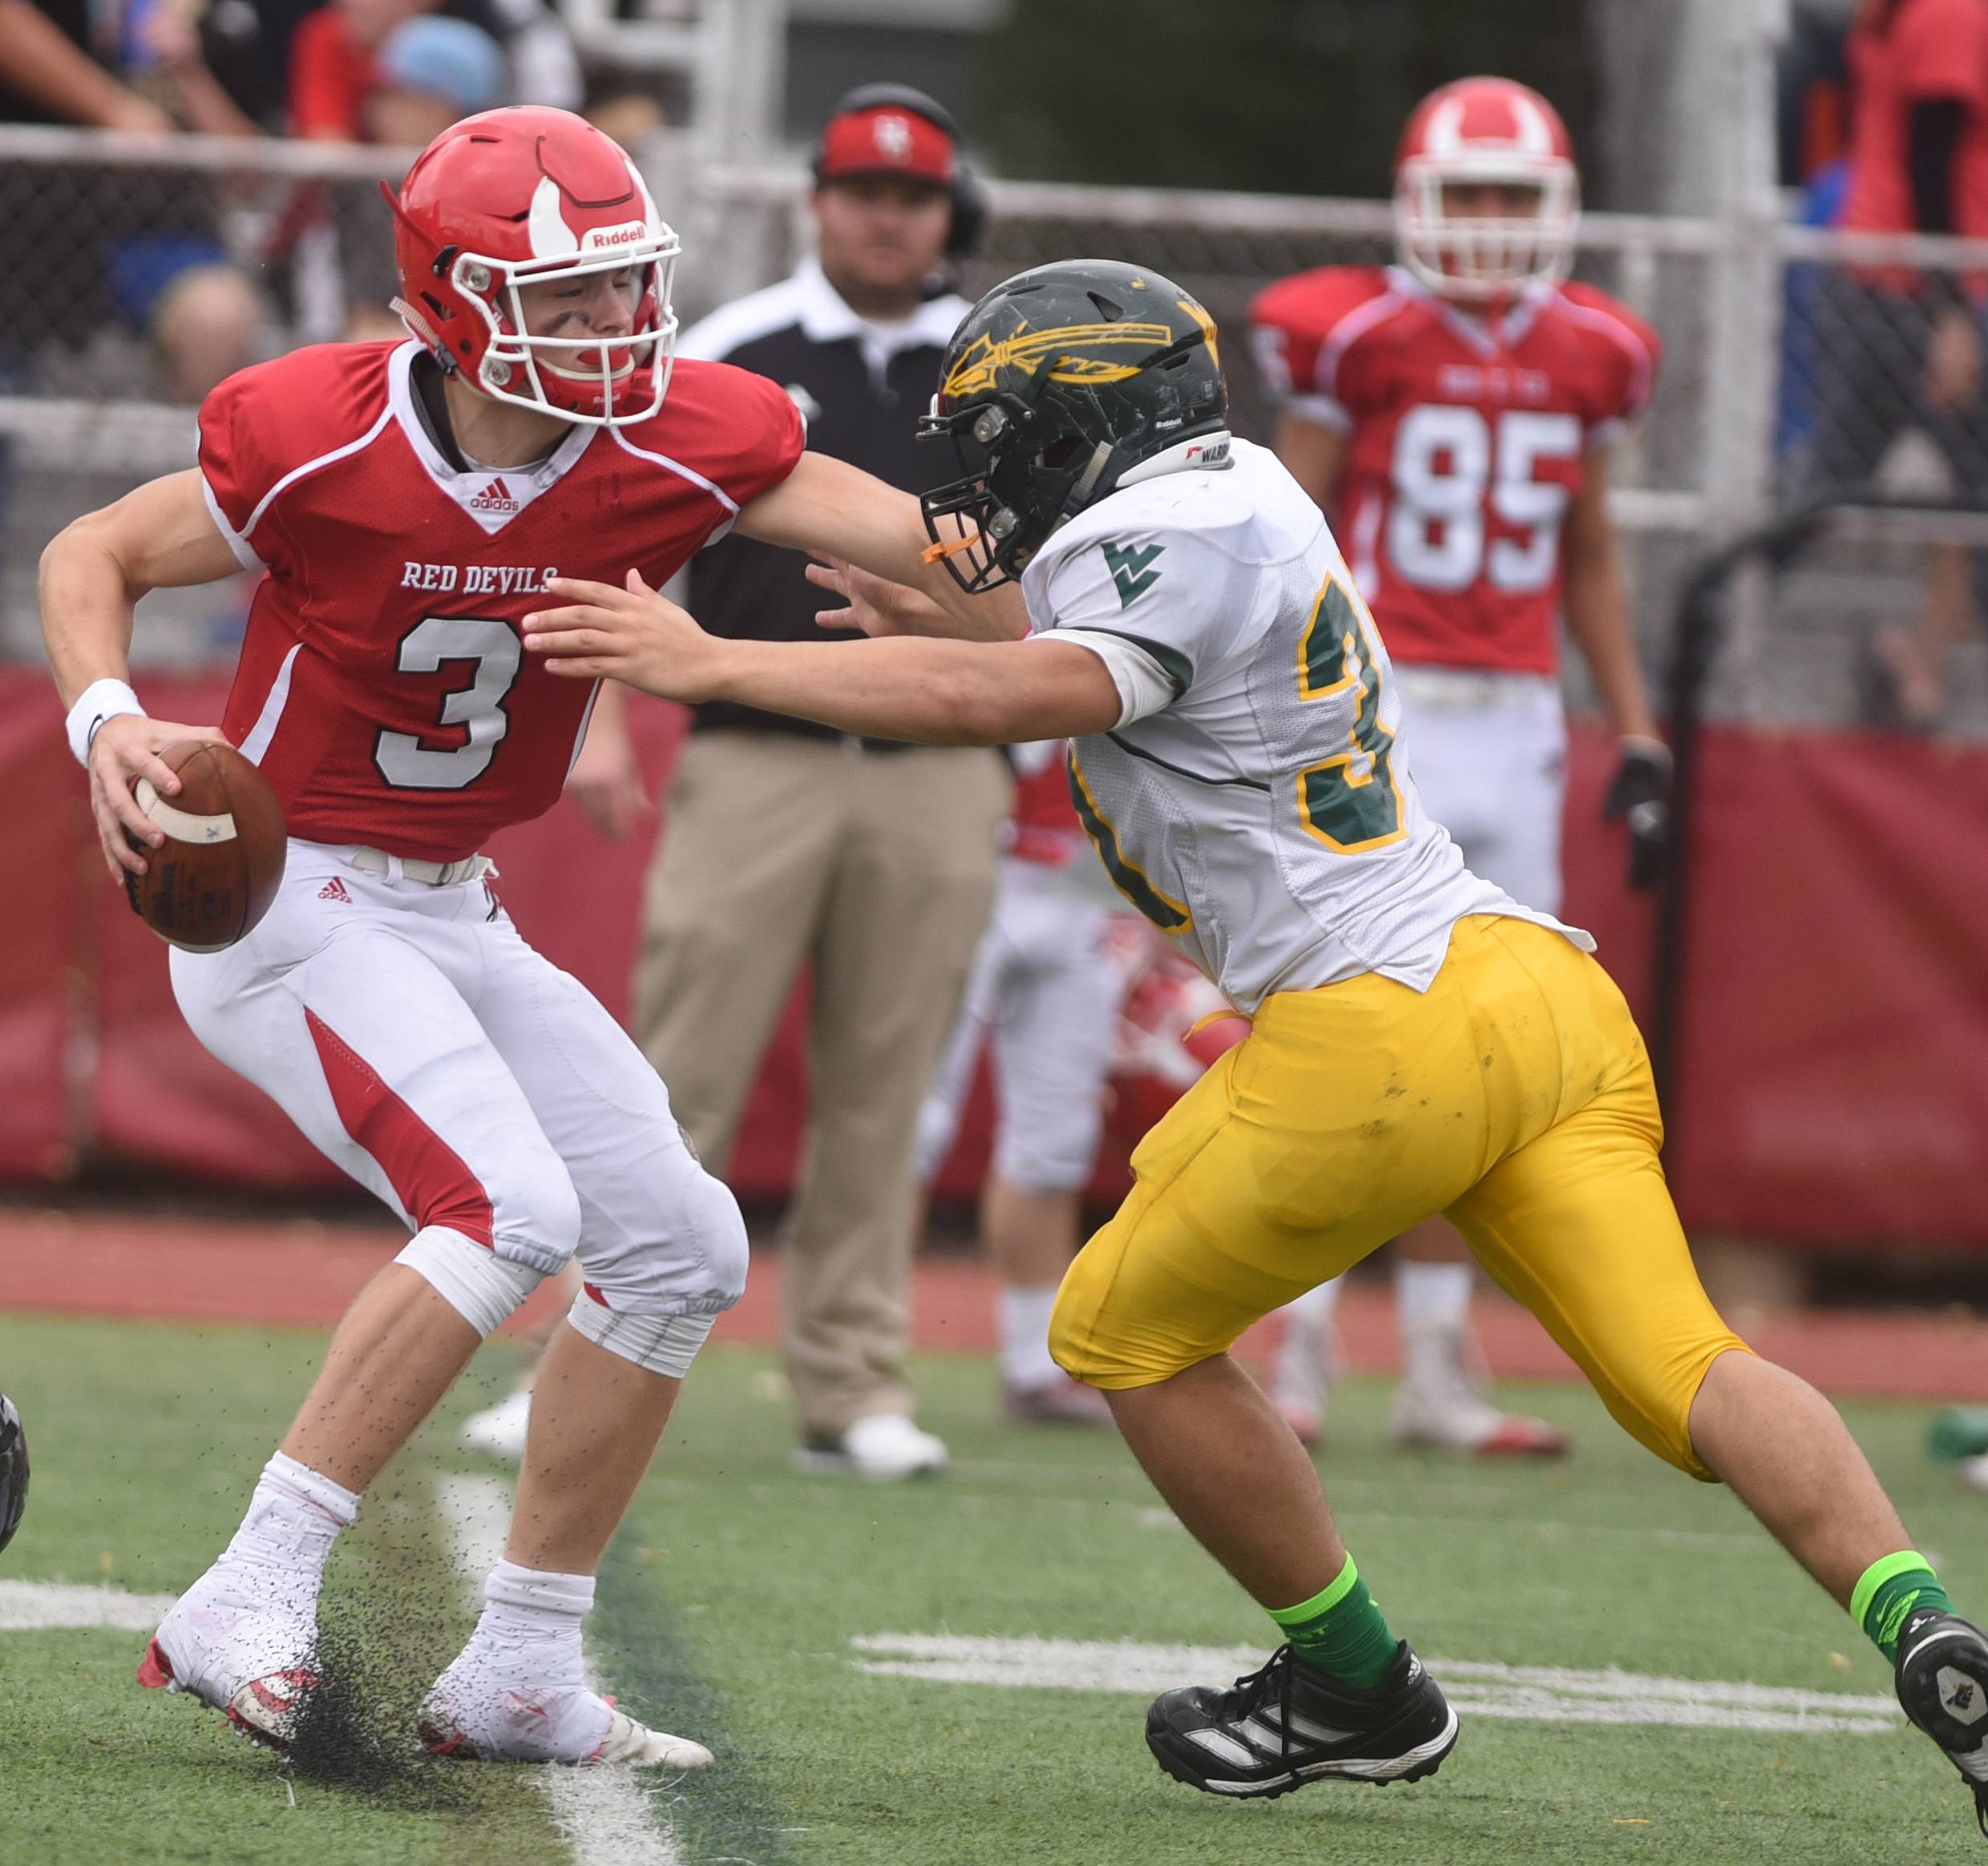 Images Waubonsie Valley Vs Hinsdale Central Playoff Football